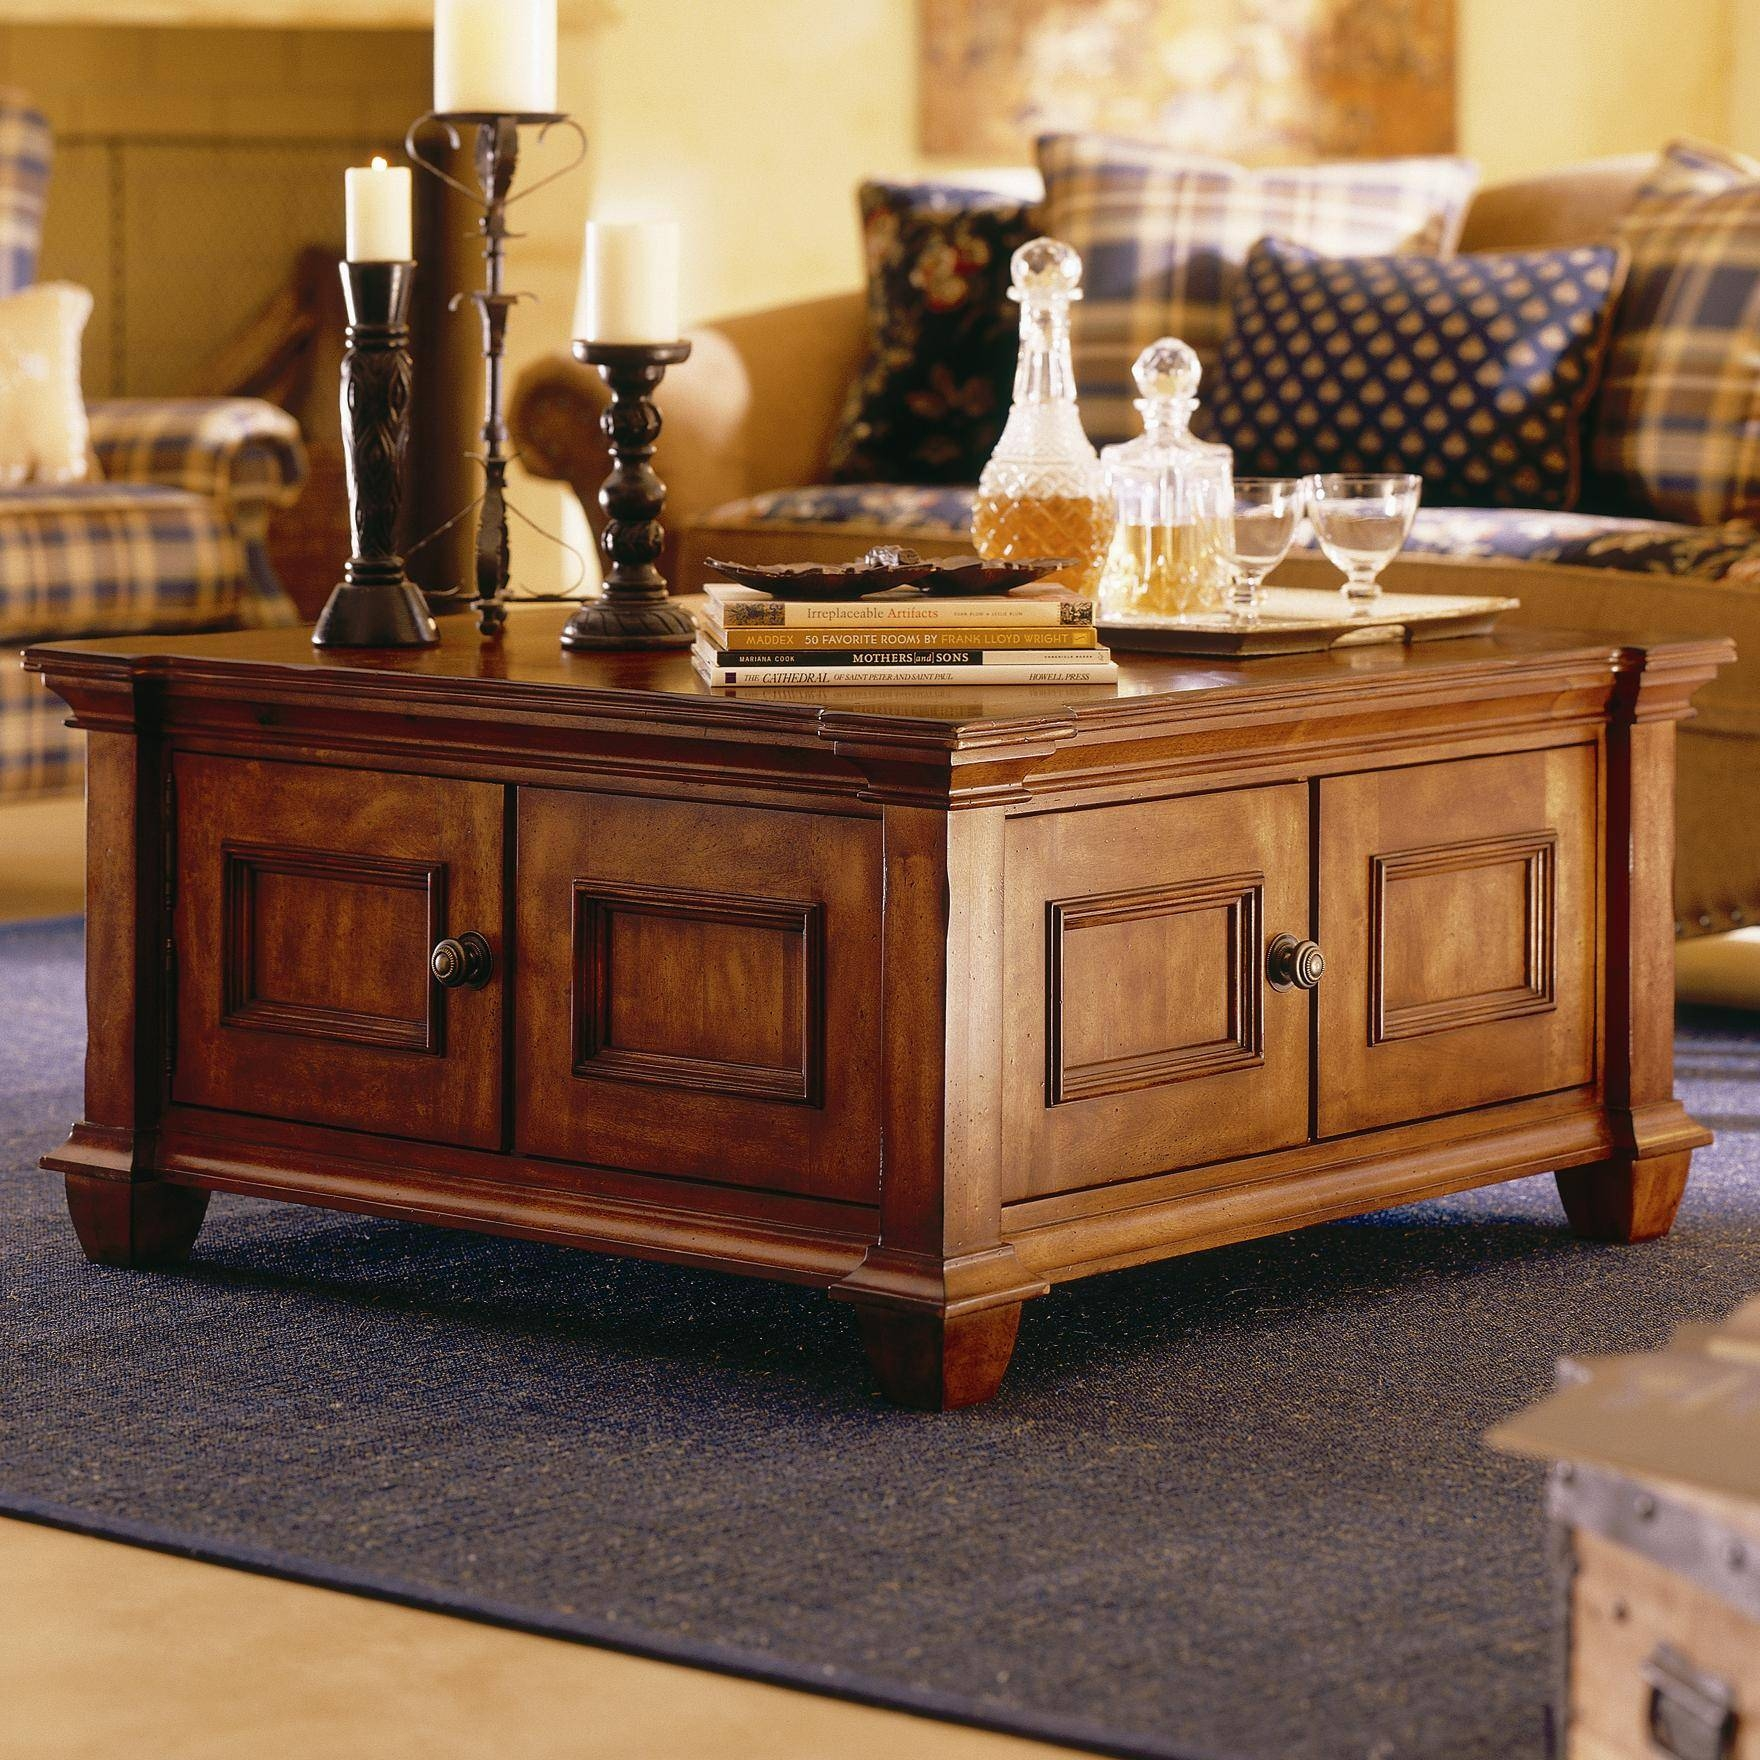 Large Square Coffee Table With Storage In Large Coffee Table With Storage (View 3 of 12)